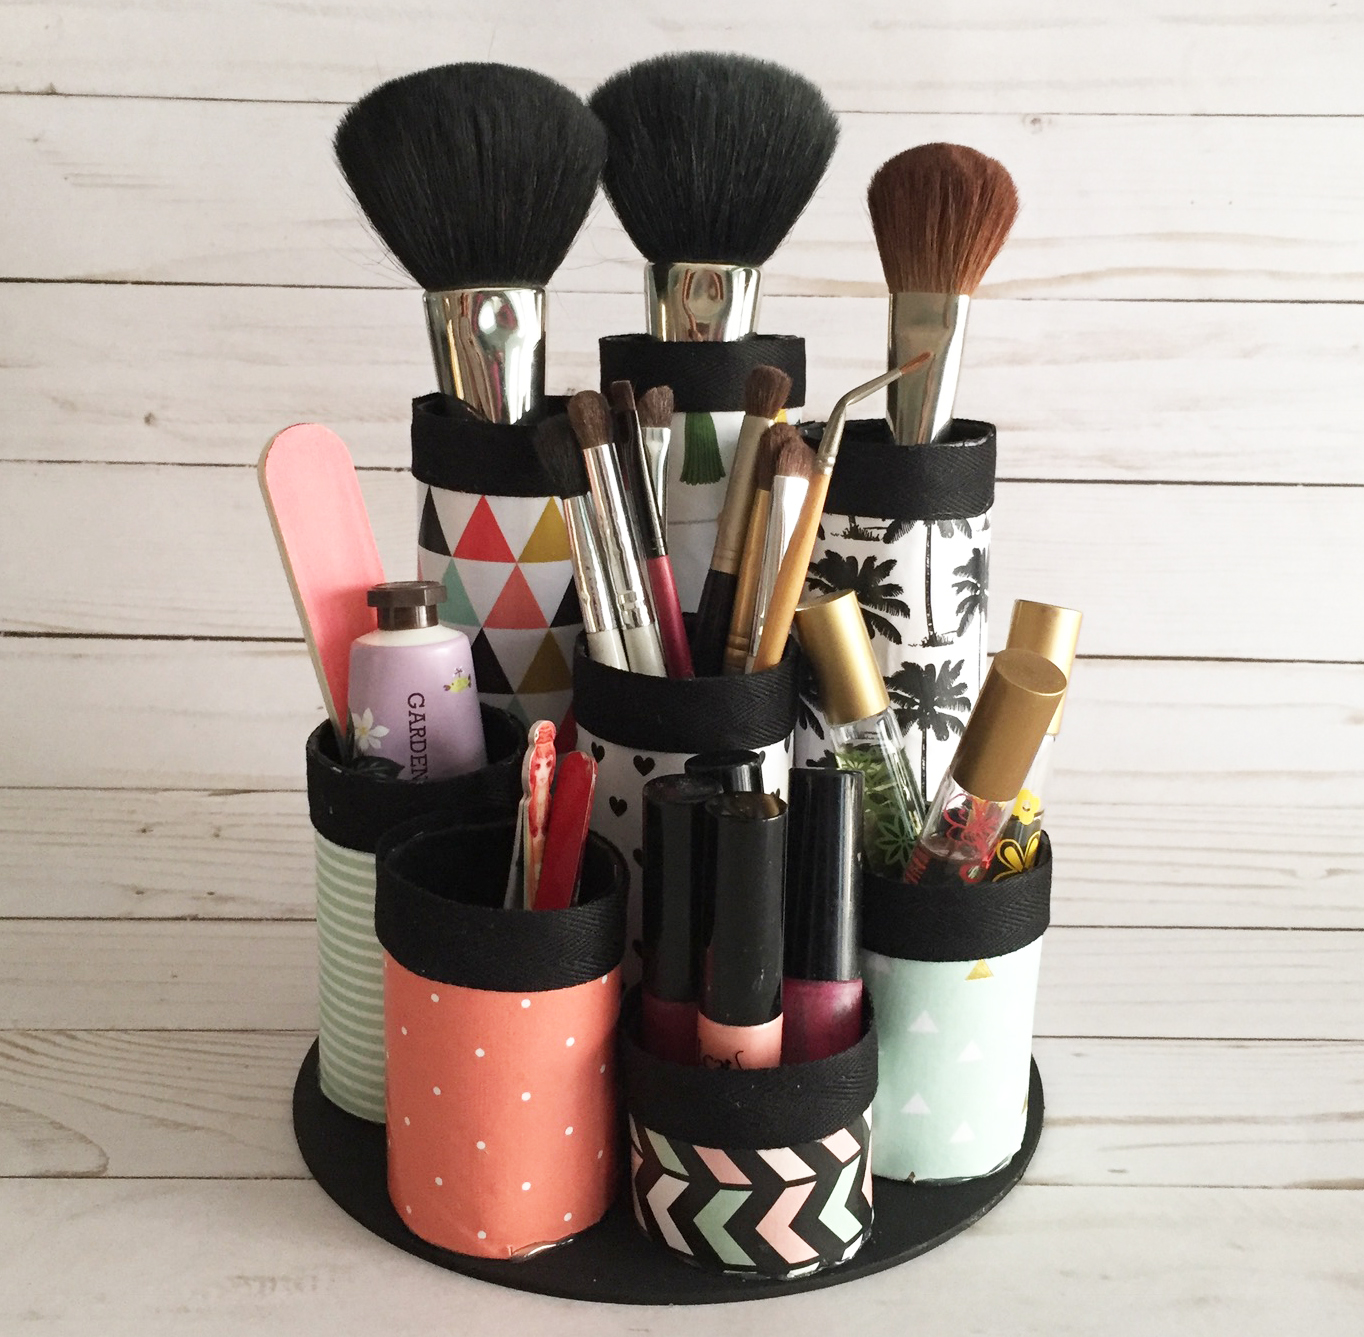 Recycled Paper Towel Tubes | Makeup Organizers And Storage Ideas For Makeup Junkies | Makeup Organizers | best makeup organizer